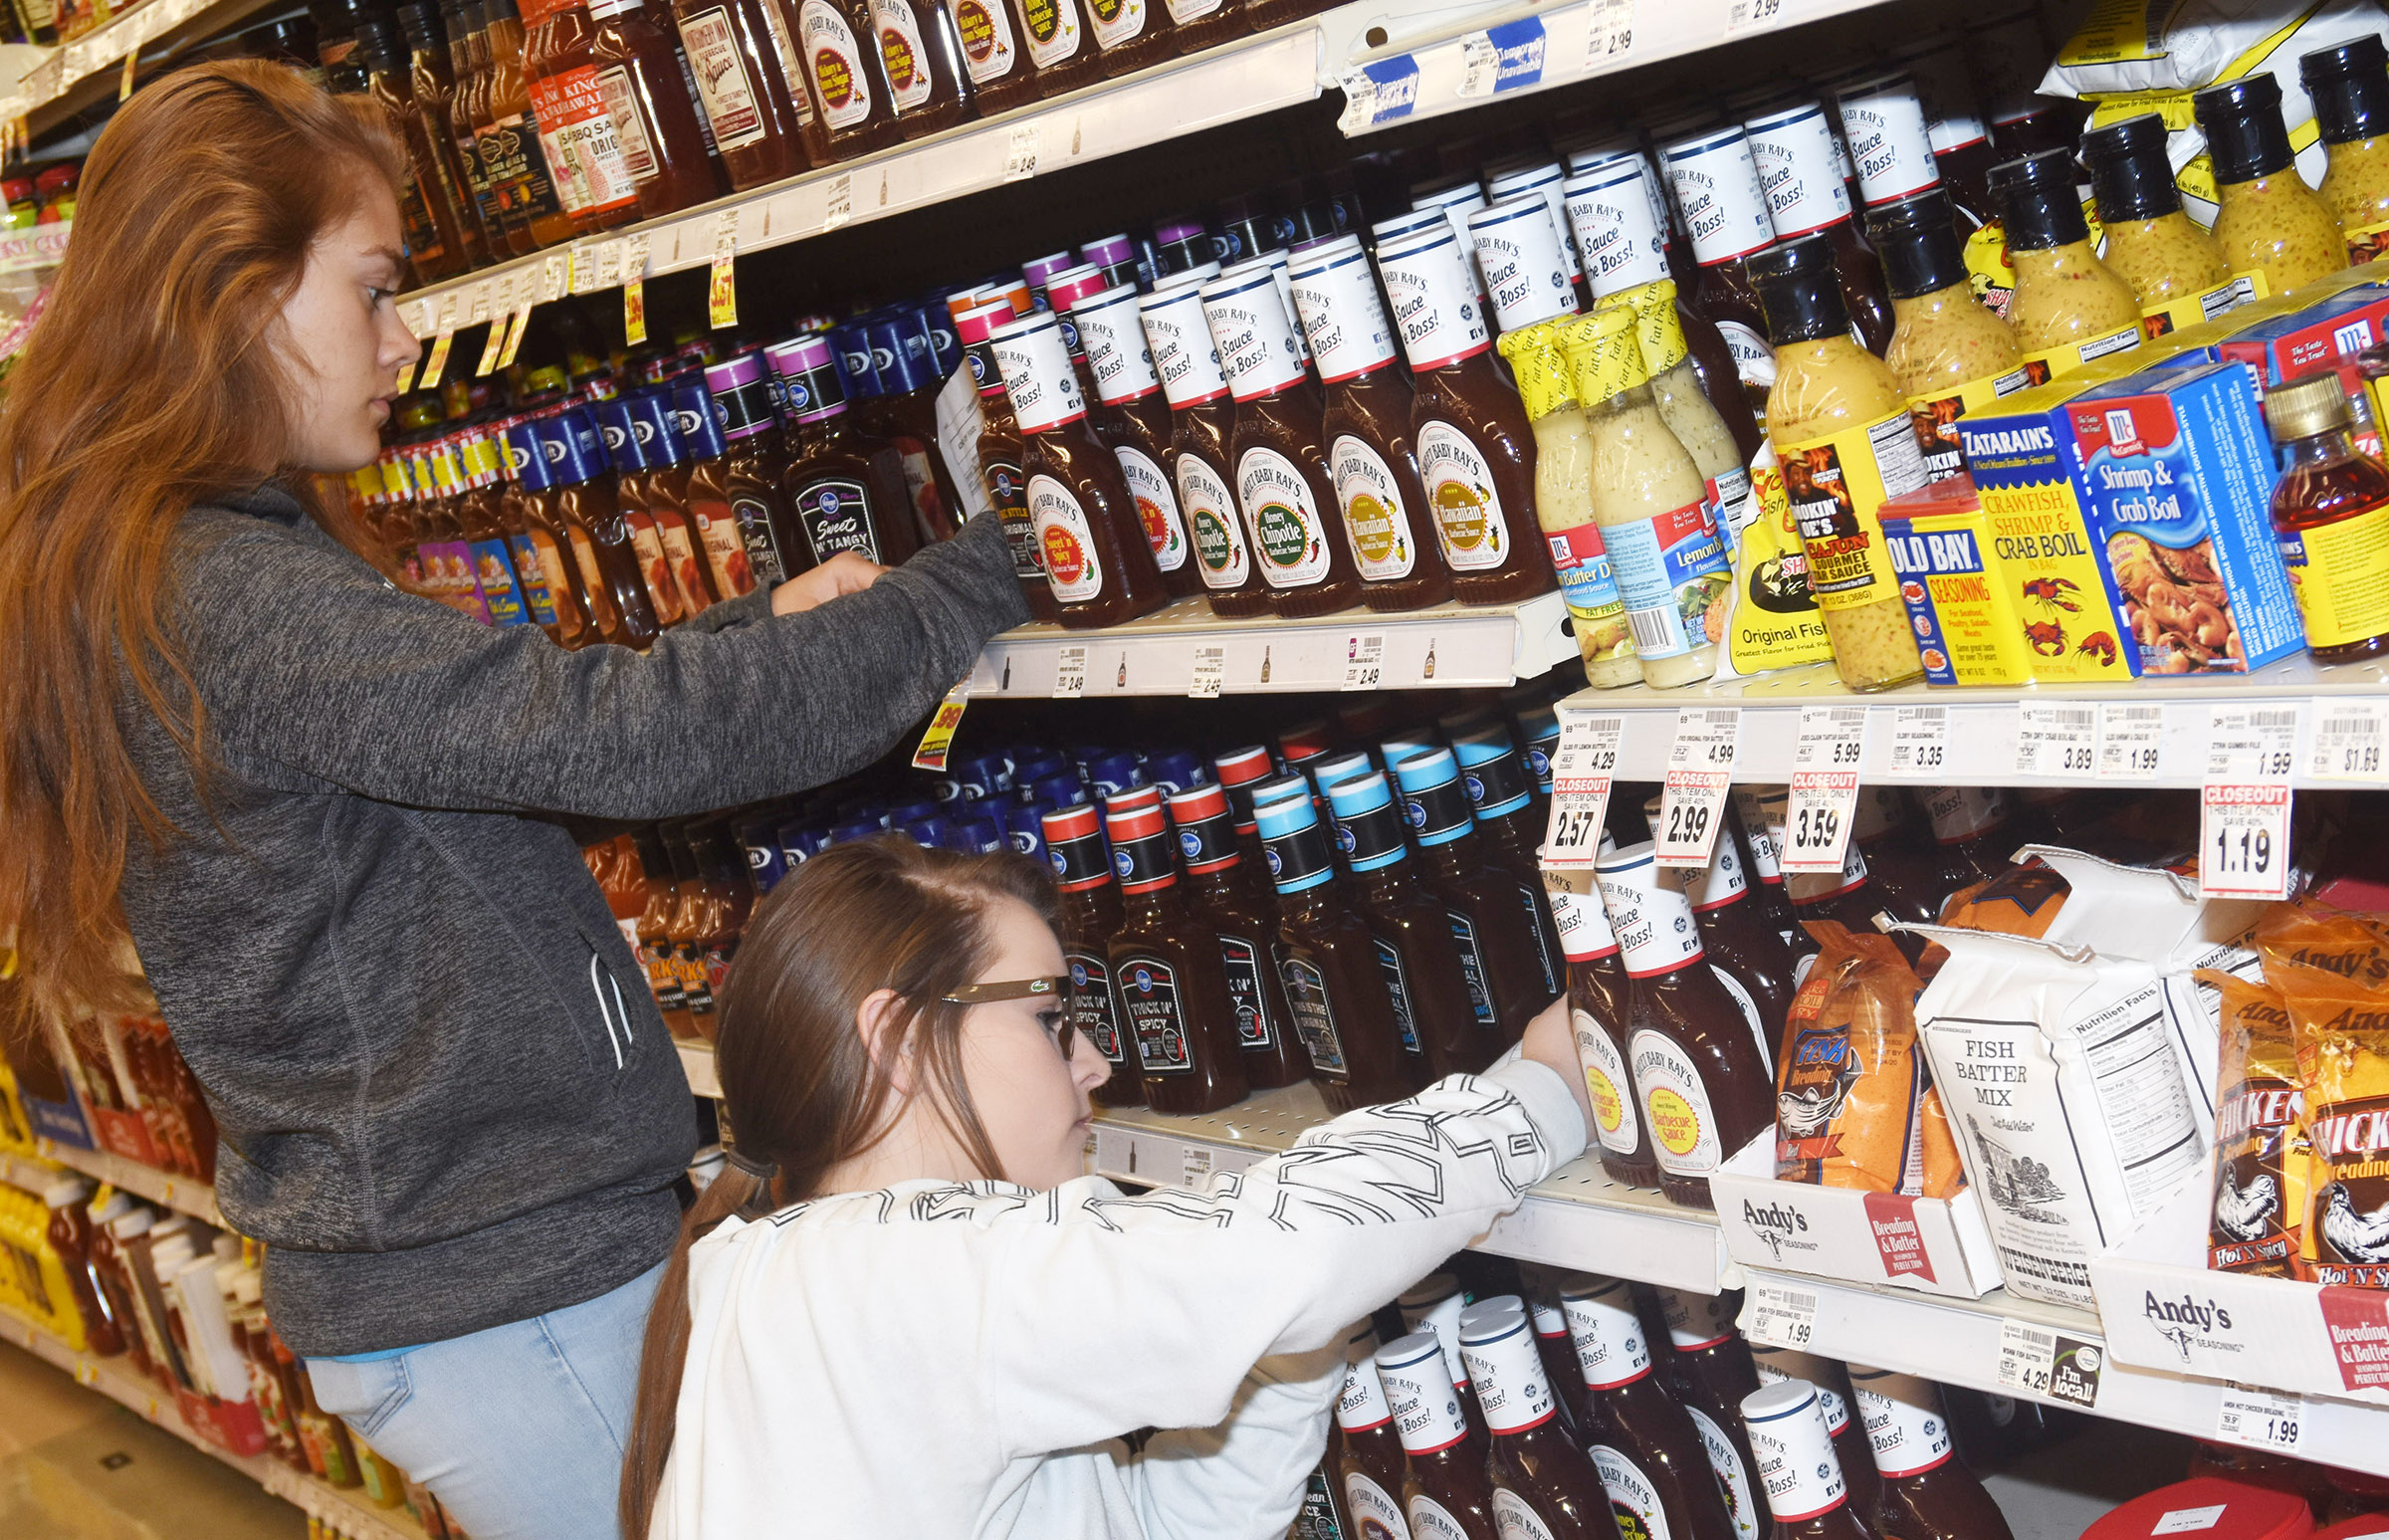 CHS freshmen Emily Kerns, at left, and Taylor Knight compare prices of barbecue sauce.